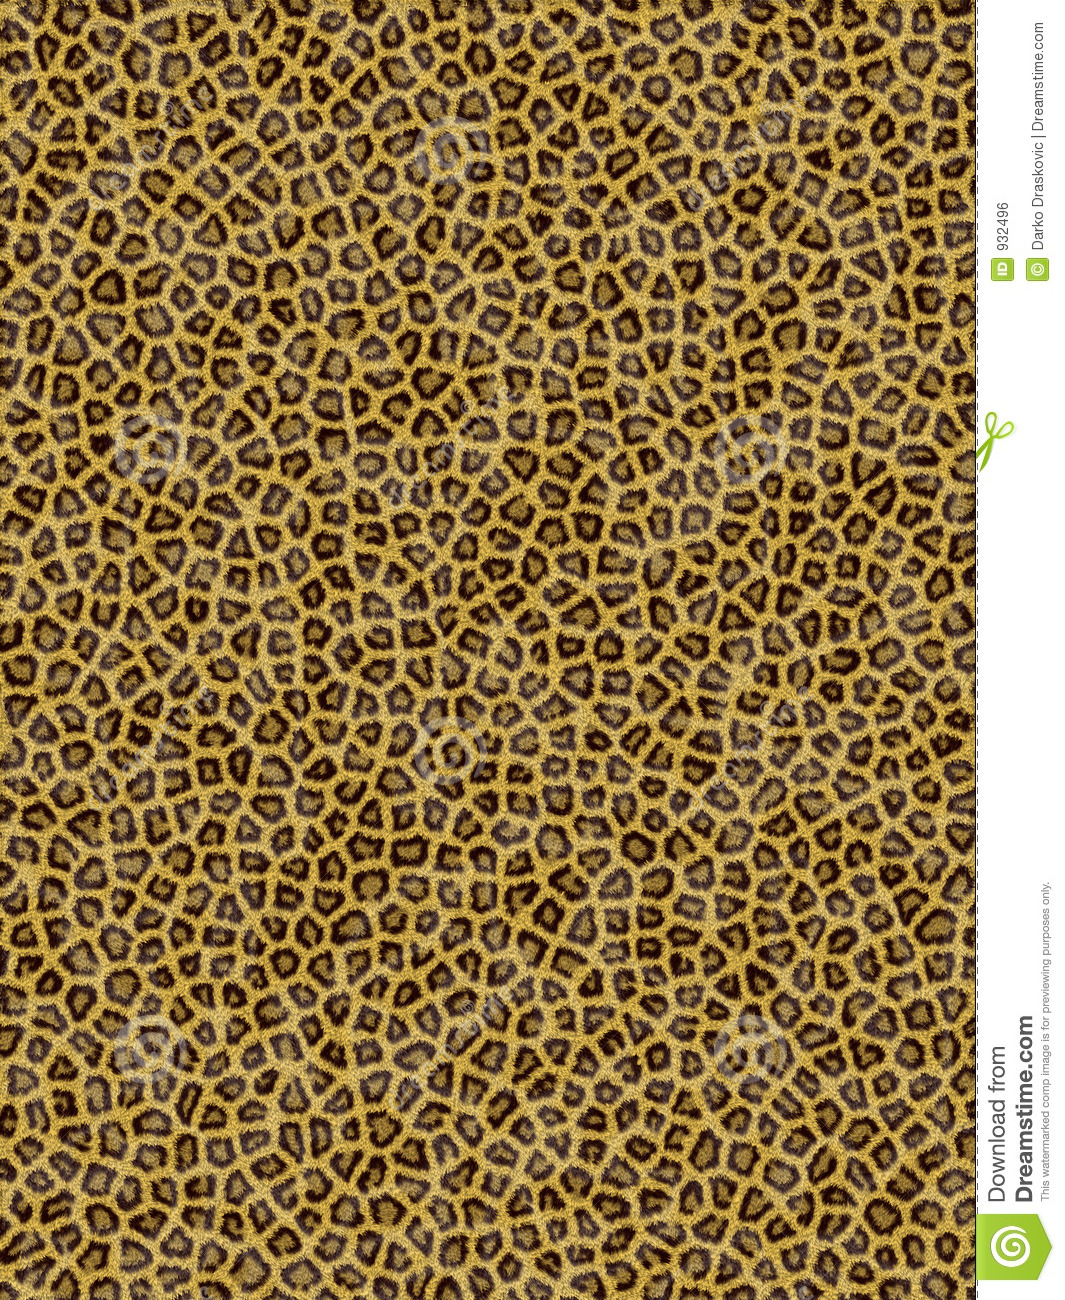 Leopard Pattern Royalty Free Stock Image - Image: 932496